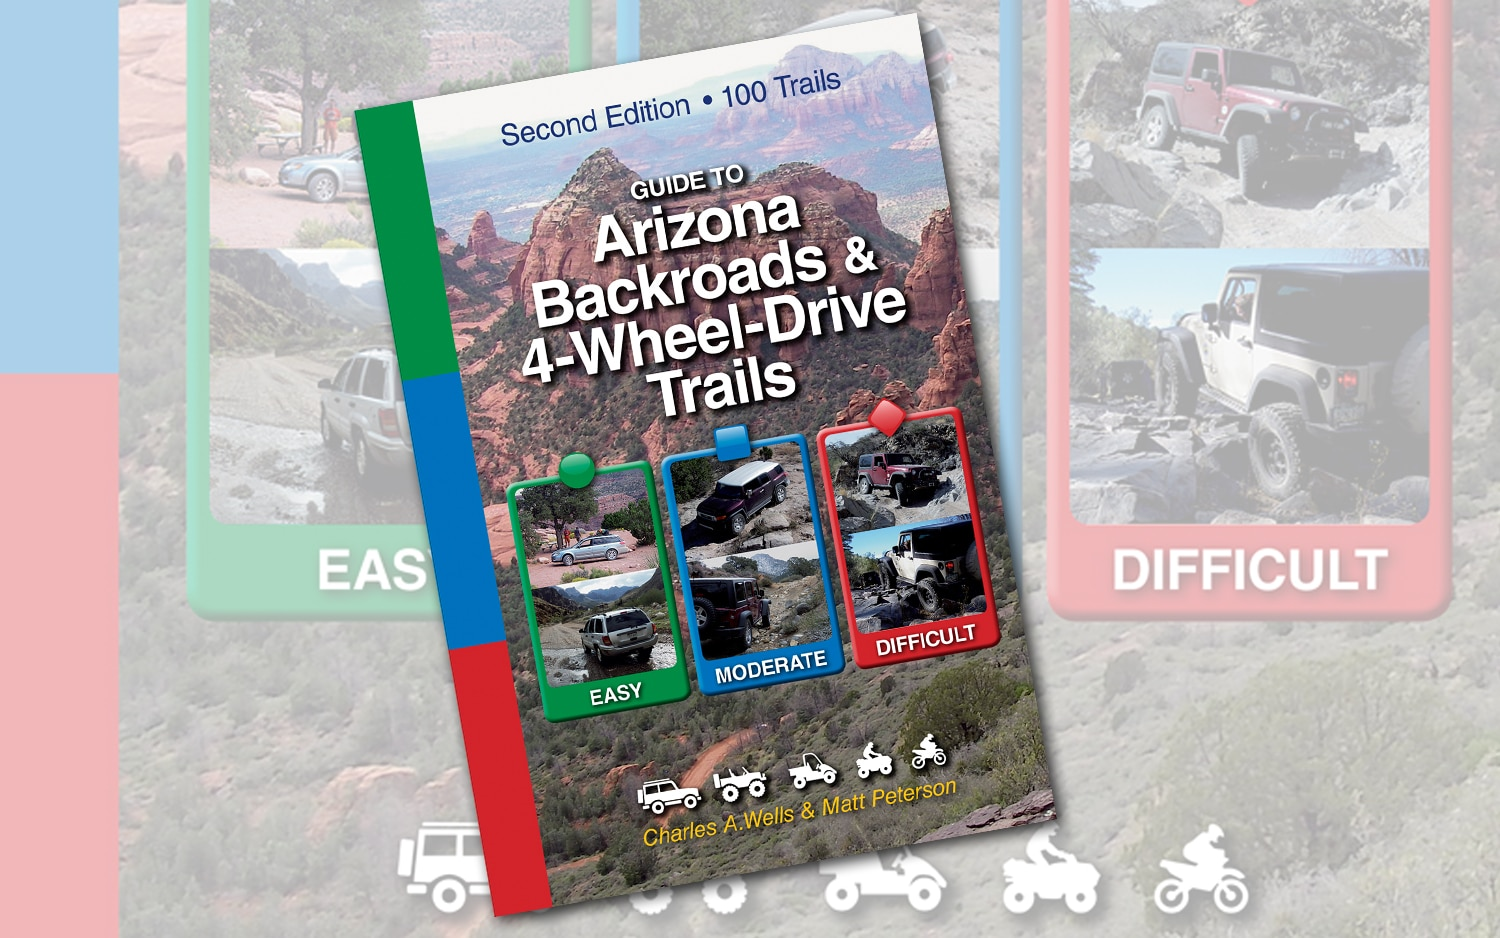 Product Spotlight: Arizona Backroads and 4-Wheel-Drive Trials Guidebook